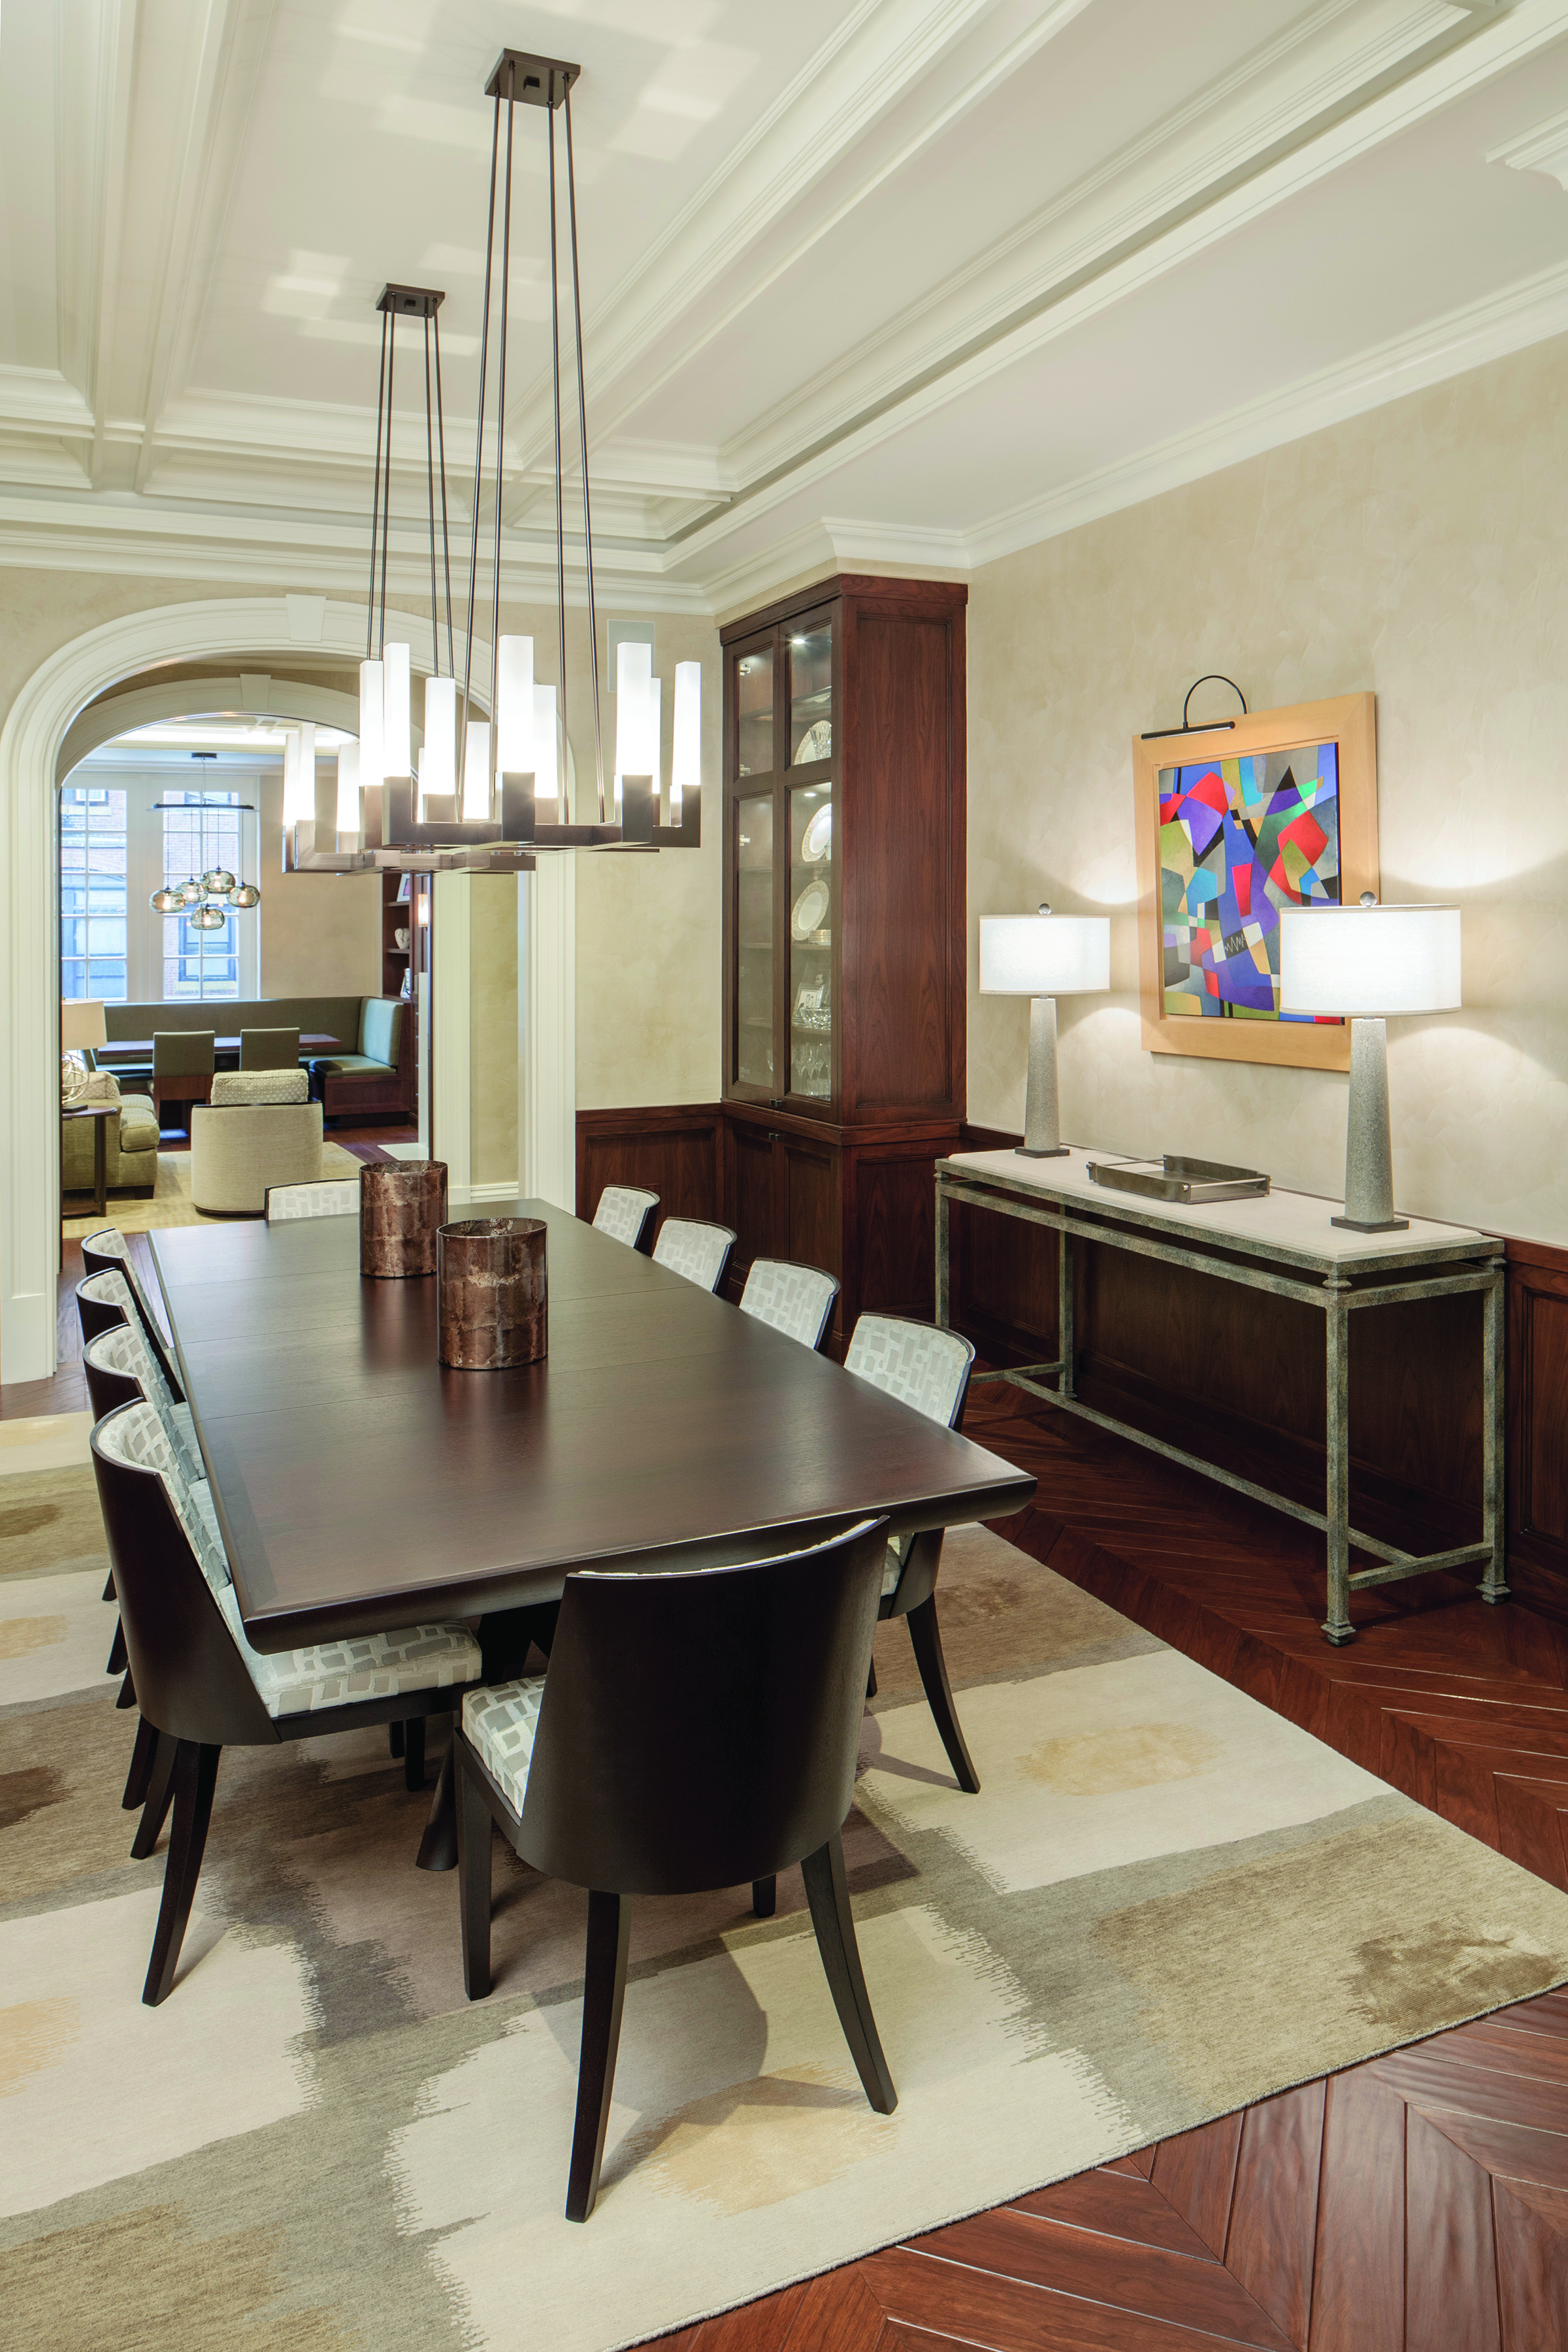 The Gathering Space: Dining rooms have evolved in both style and purpose over the years